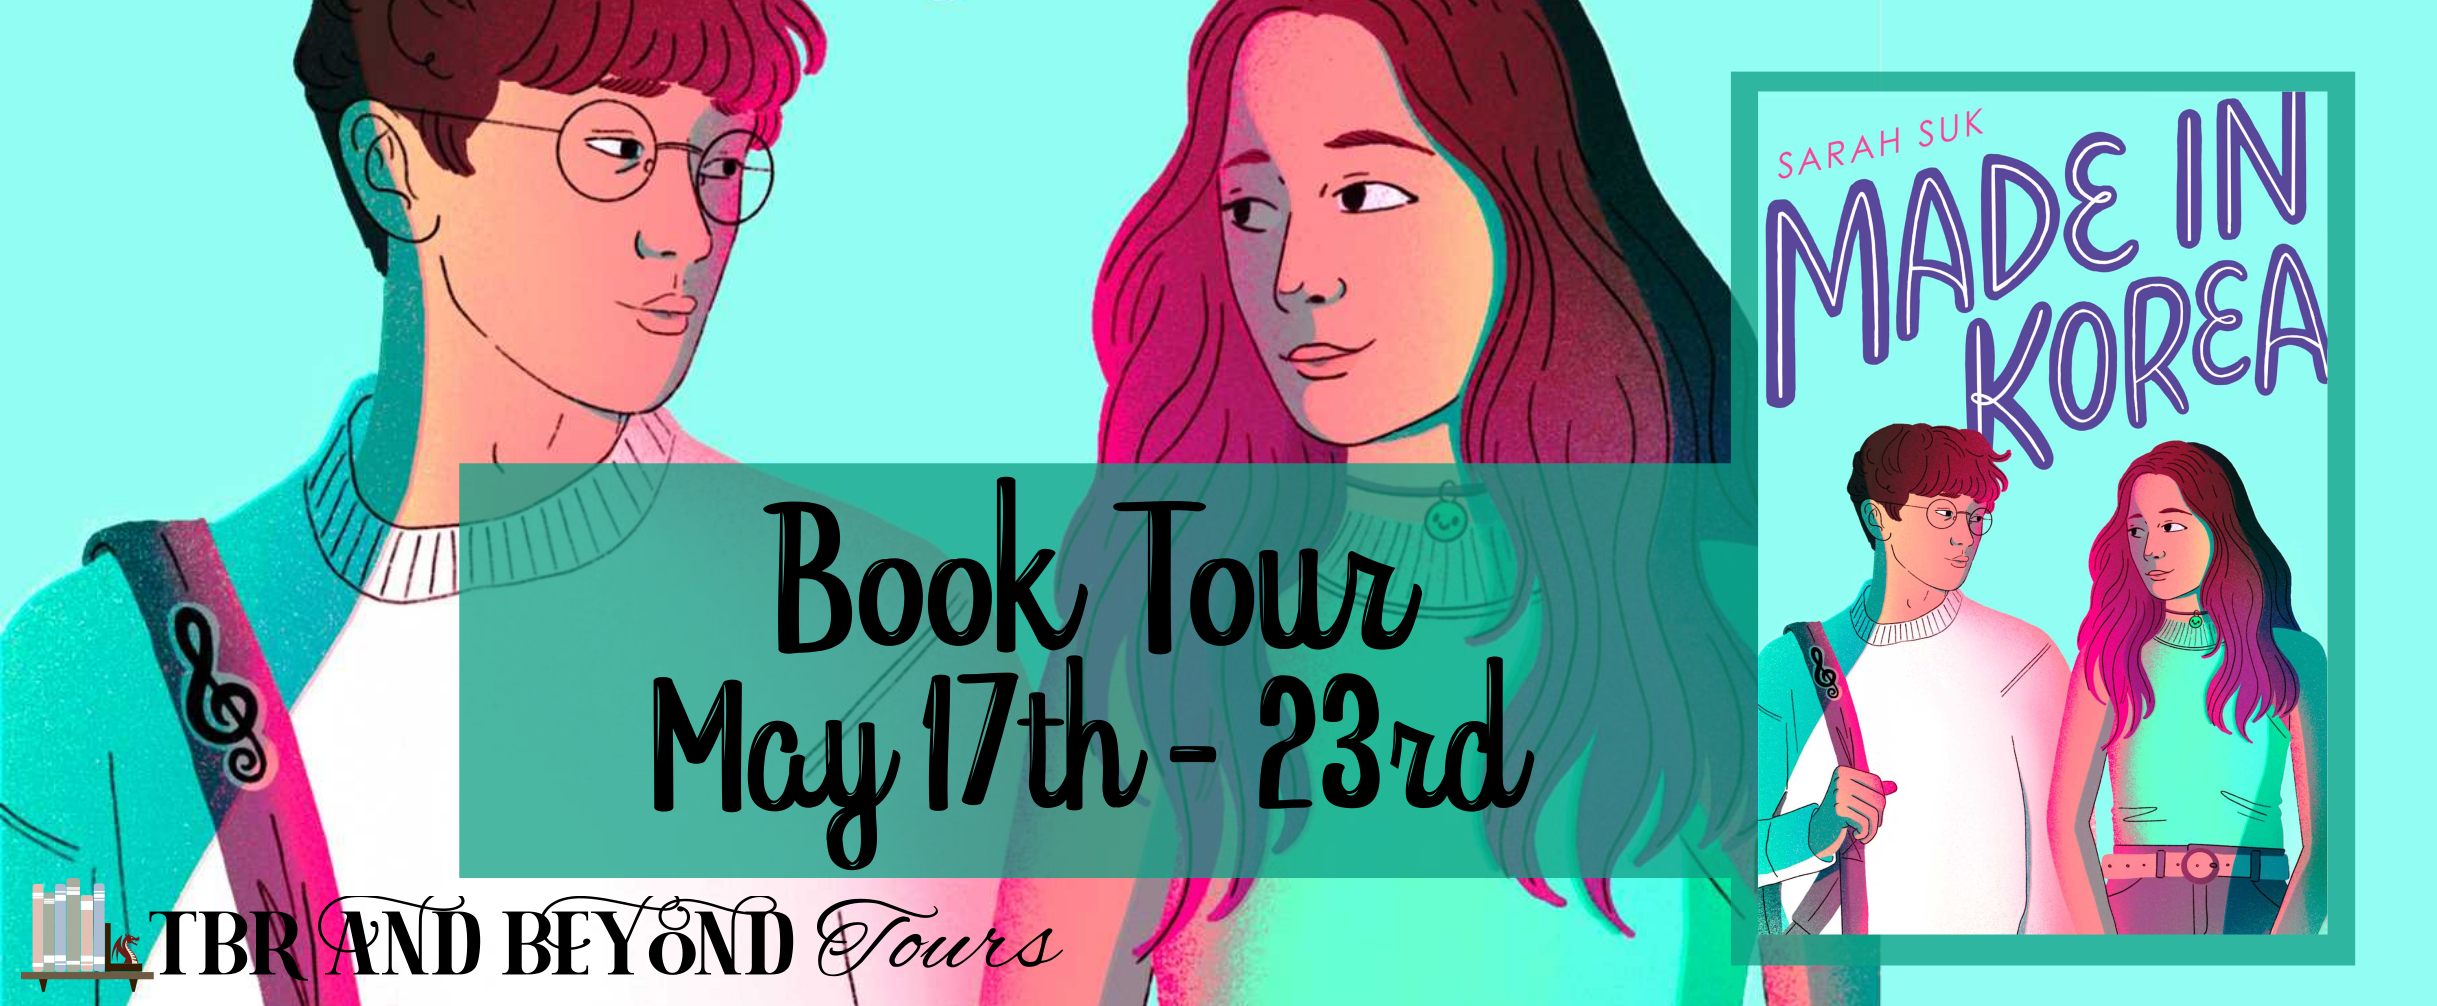 Blog Tour: Made in Korea by Sarah Suk (Spotlight + Giveaway!)